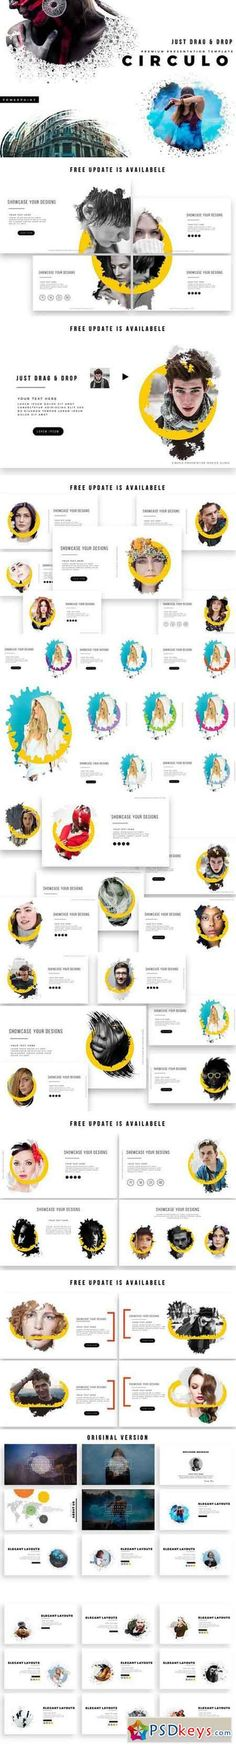 CIRCULO PowerPoint Template 1757474 #business #design